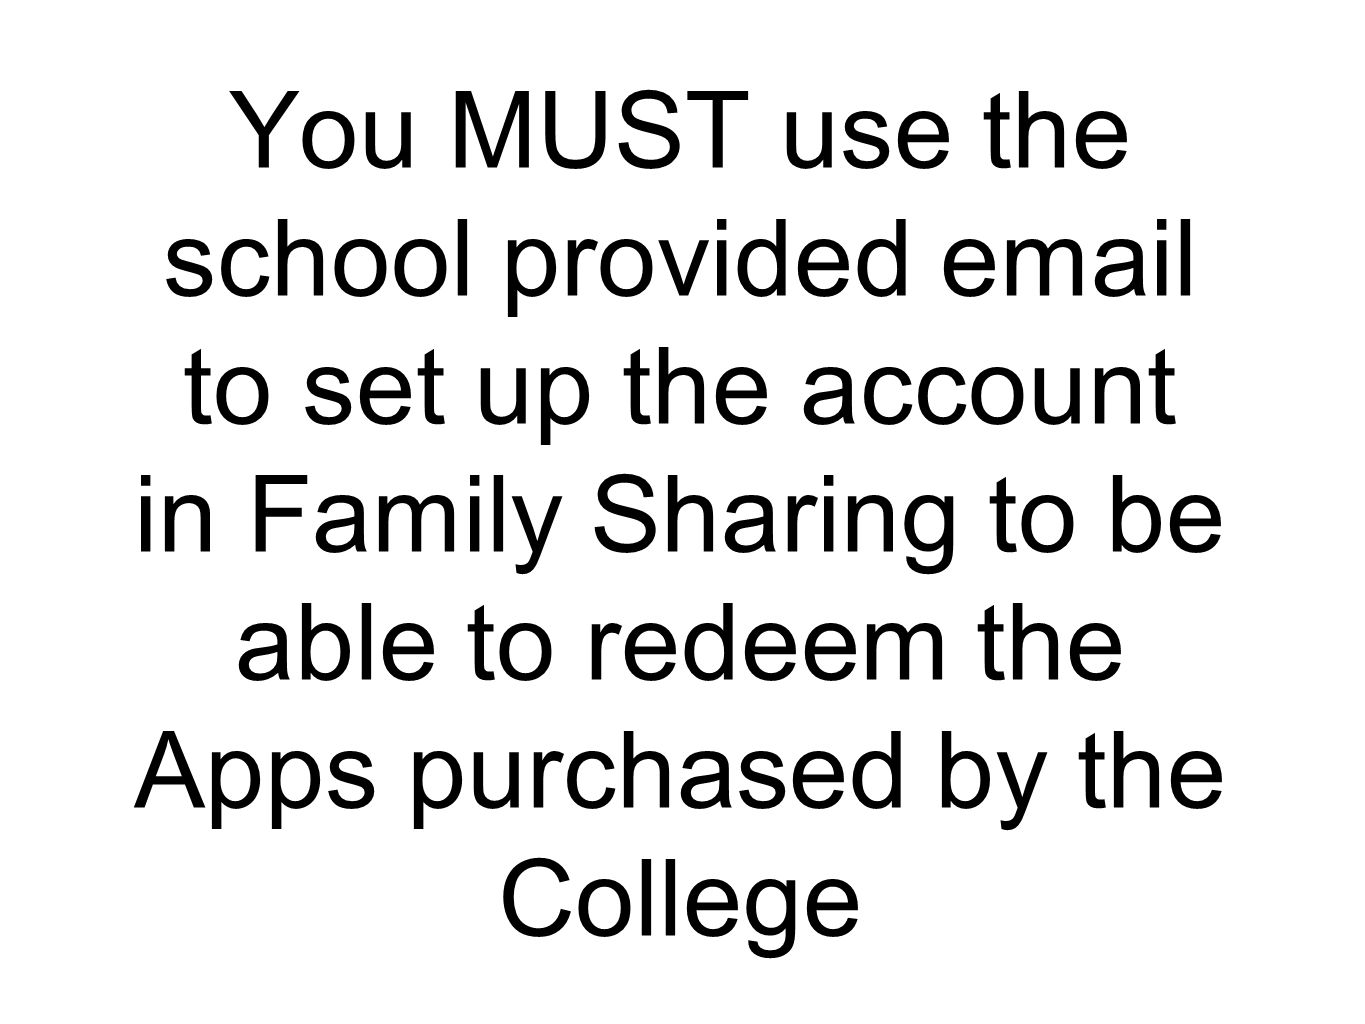 You MUST use the school provided email to set up the account in Family Sharing to be able to redeem the Apps purchased by the College